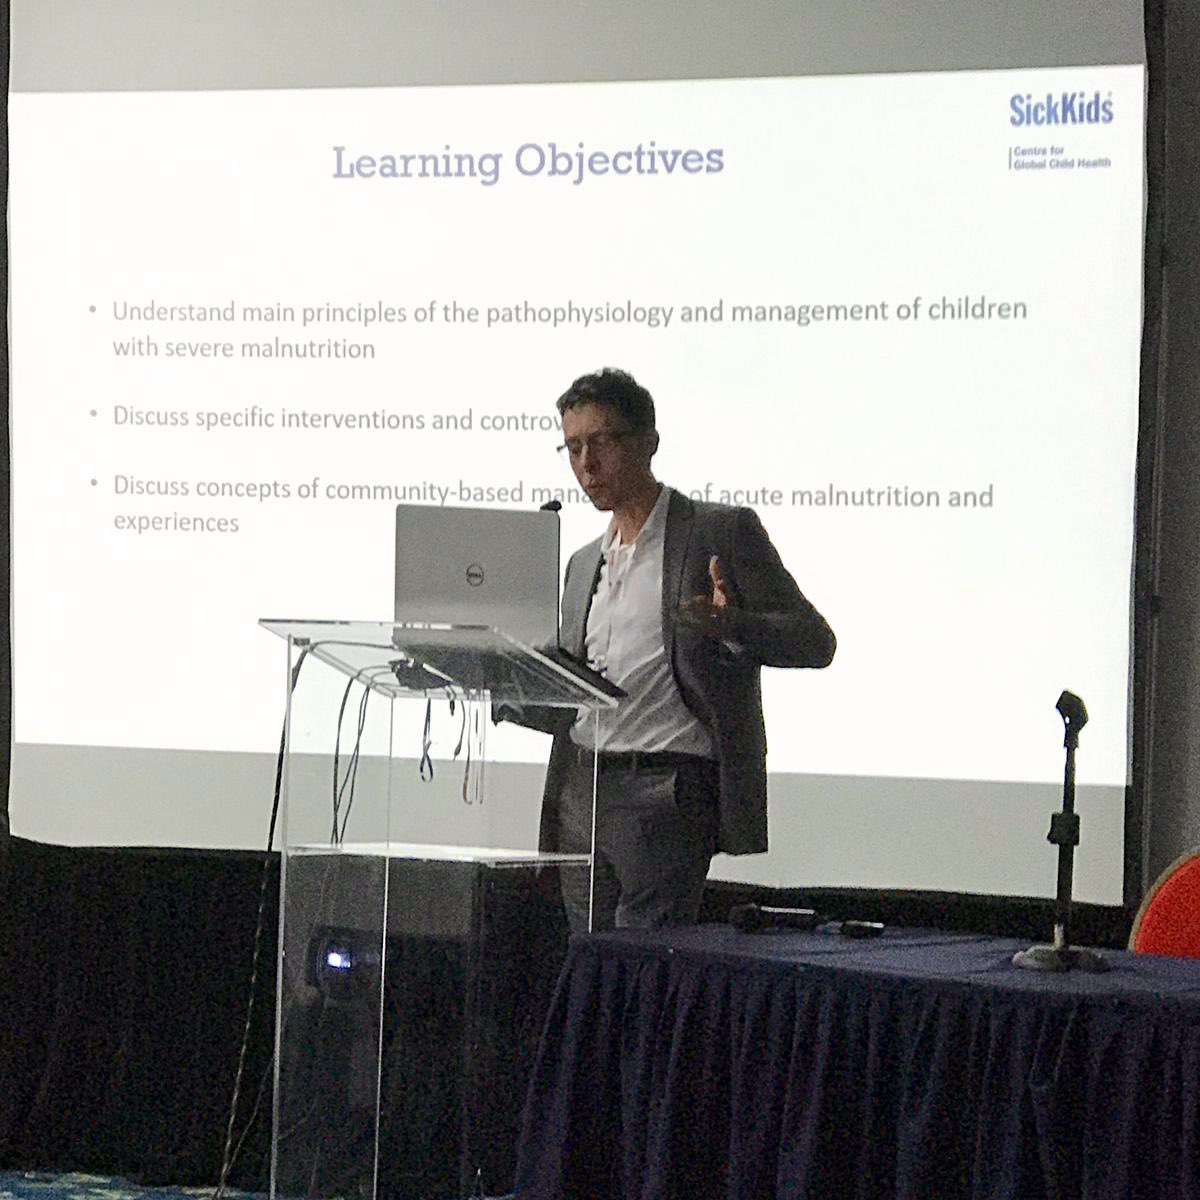 We're kicking off @IPA_Congress  #IPA2019 in #PanamaCity with a Pre-Congress workshop on Advanced Knowledge &amp; Skills in Child &amp; Adolescent Nutrition co-facilitated by @SickKidsGlobal's Dr. Zulfiqar Bhutta &amp; Dr. Berthold Koletzko @LMU_Muenchen. Who else is joining us in Panama?<br>http://pic.twitter.com/LKBn43i6fb